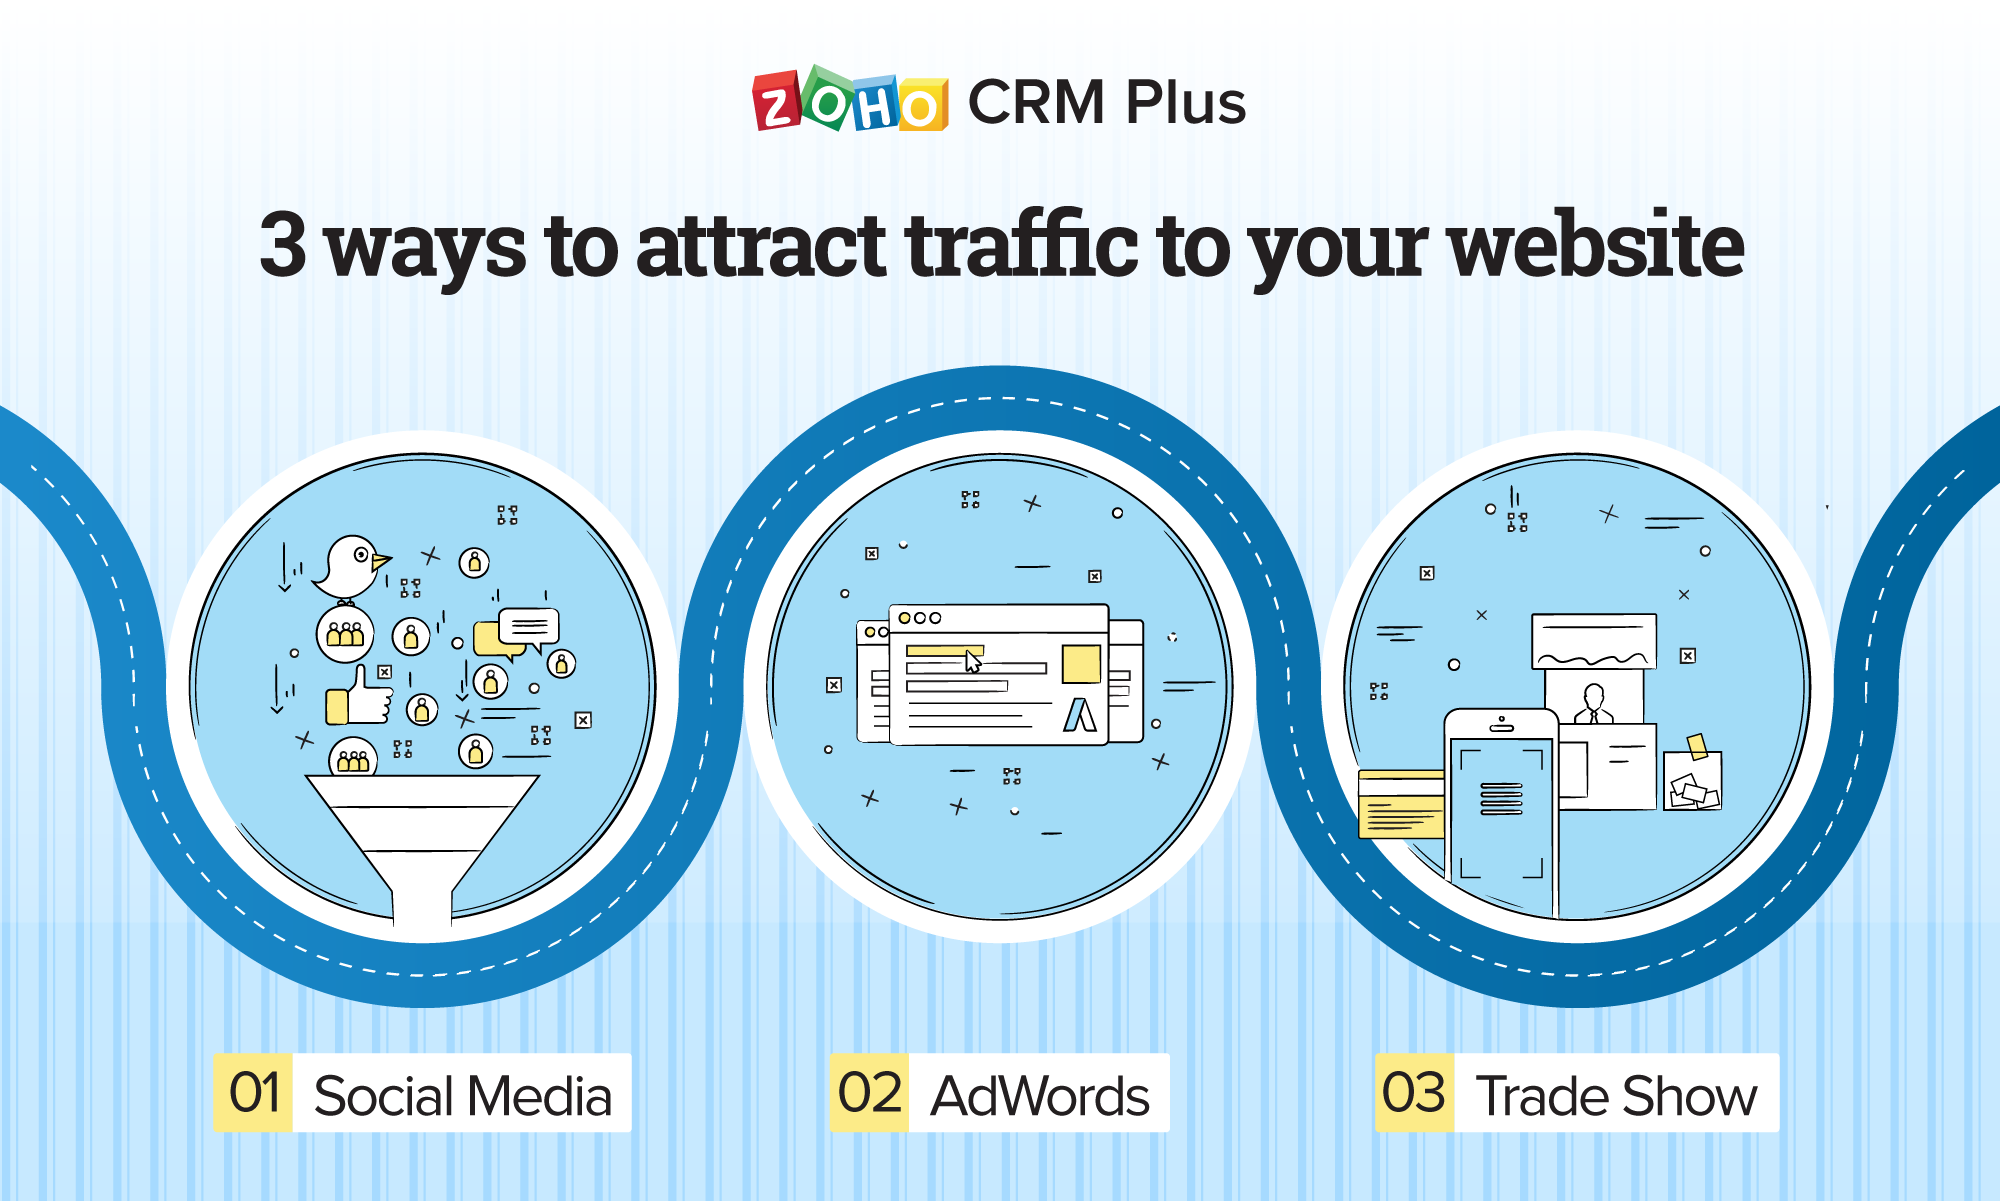 3 ways to attract traffic to your website